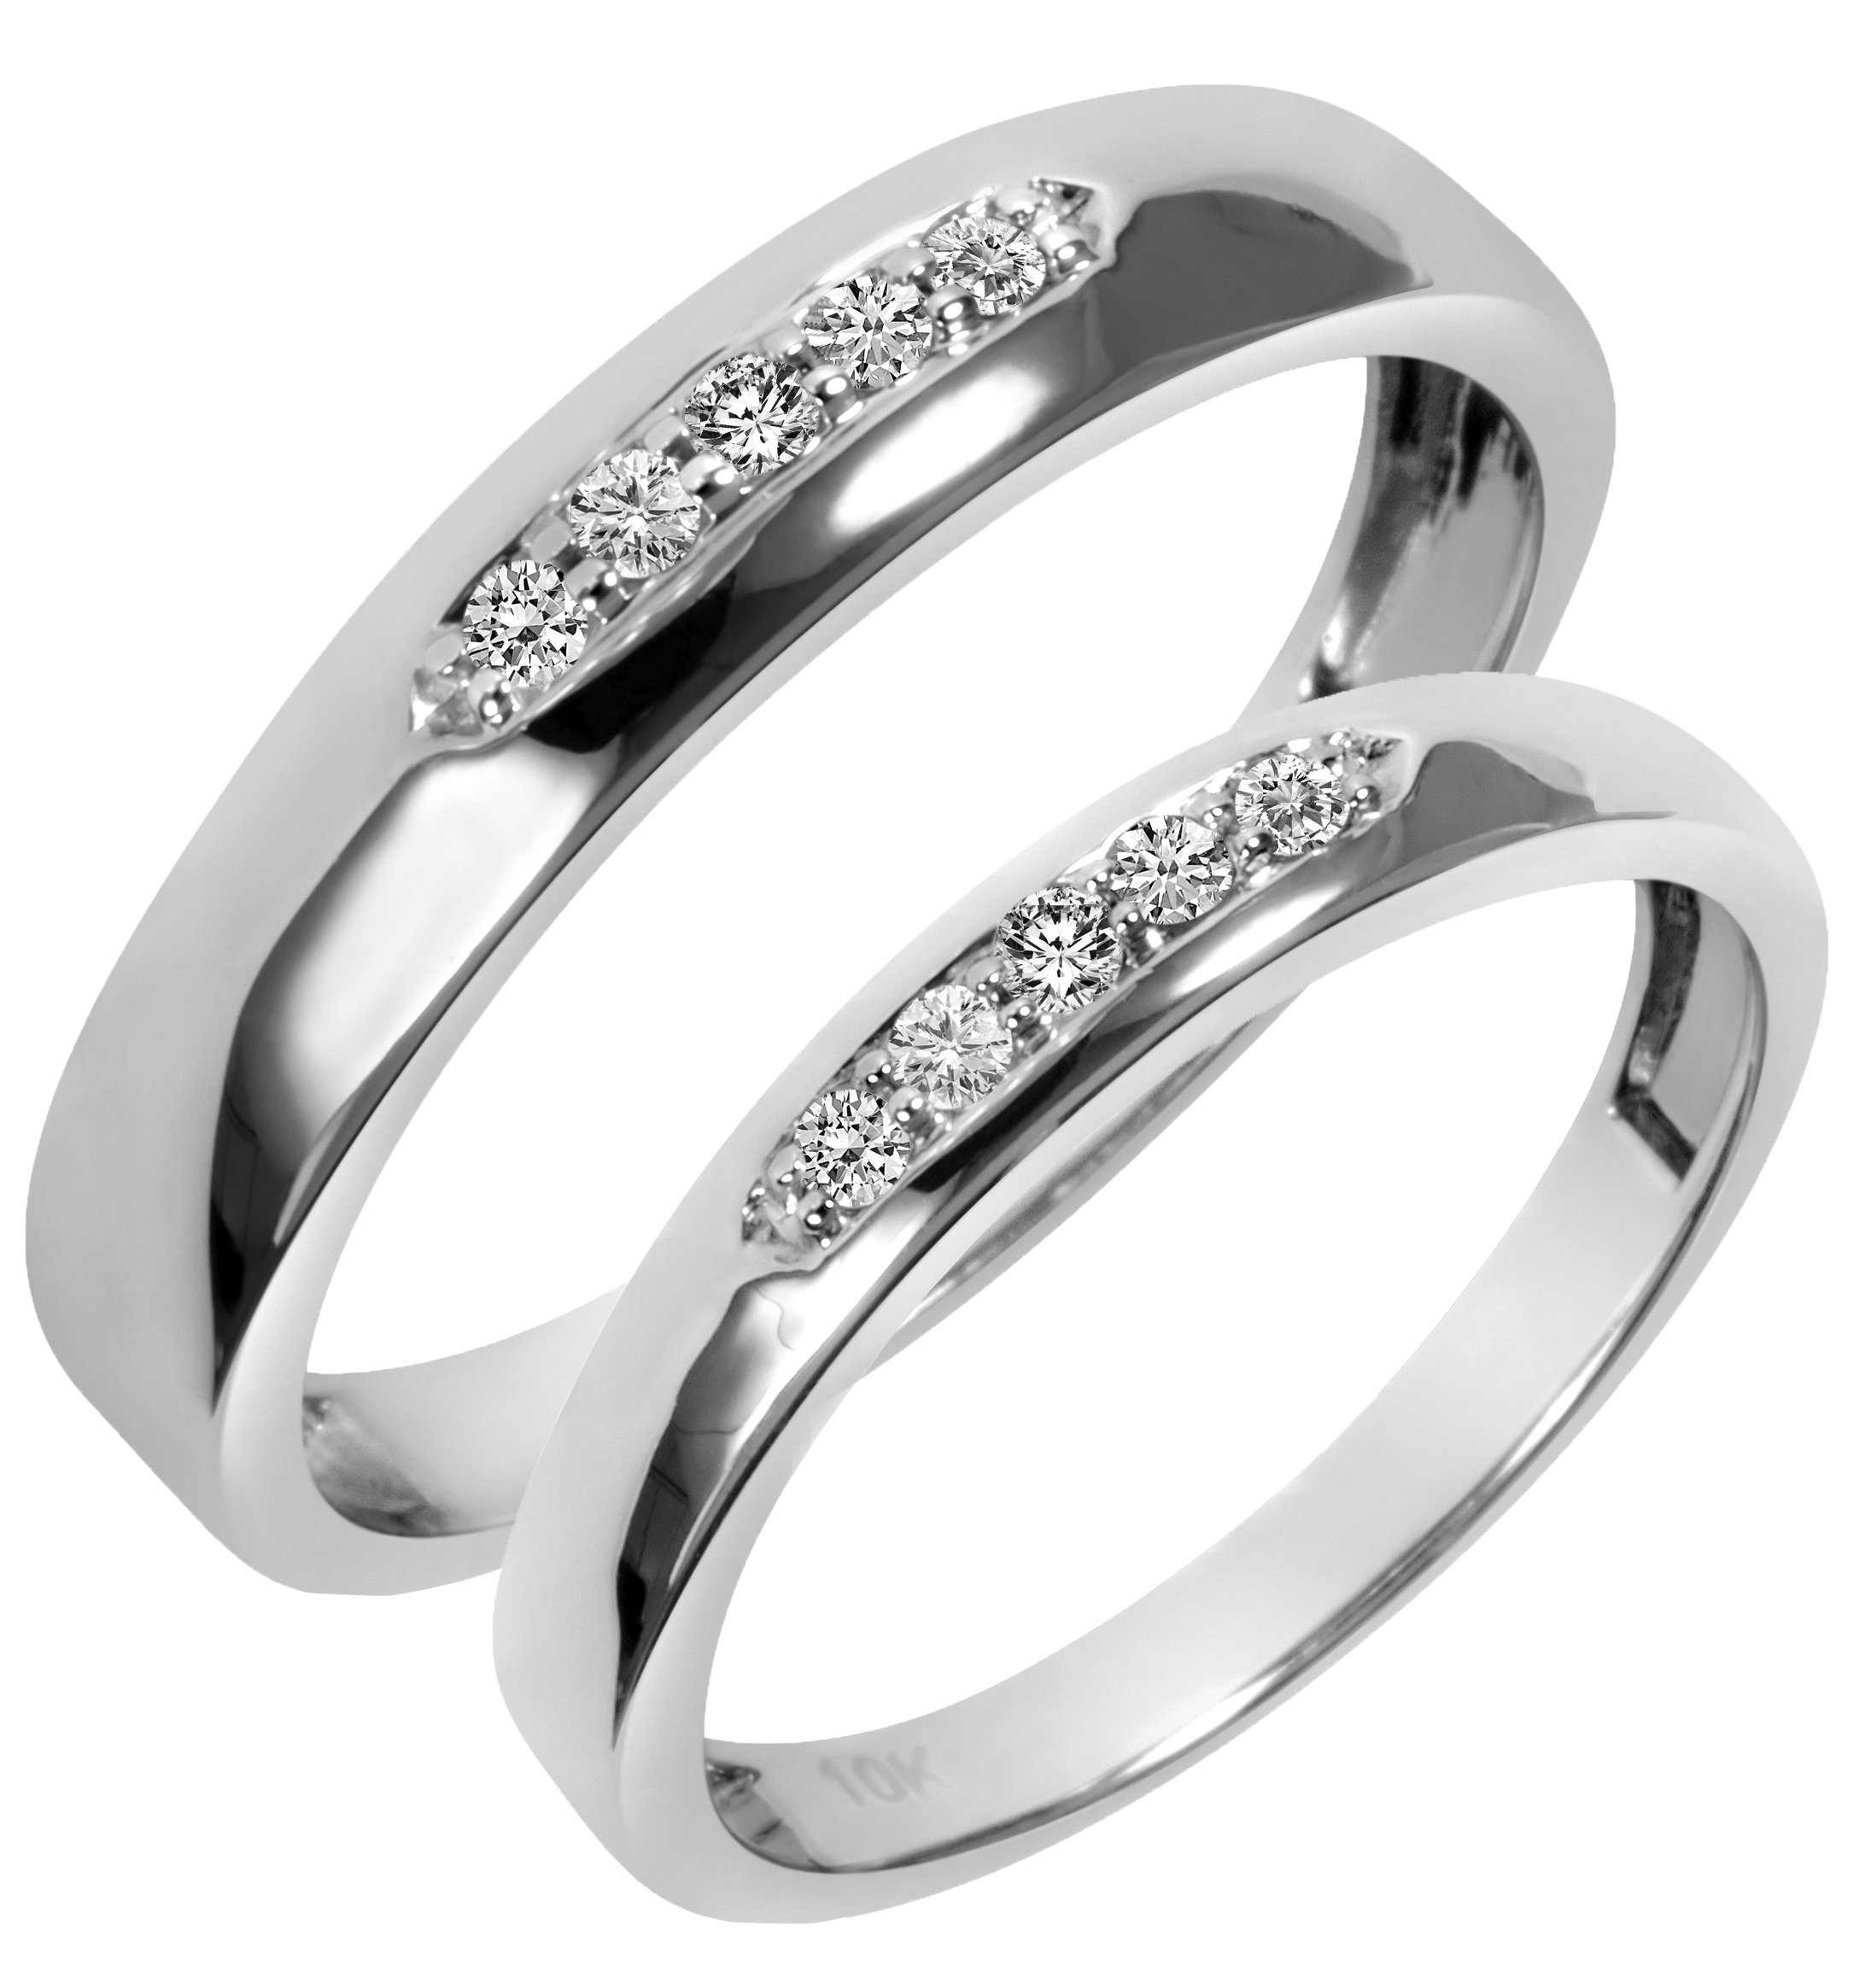 ring eternity dk matching rings with bands diamond and wedding northern ireland mosaic